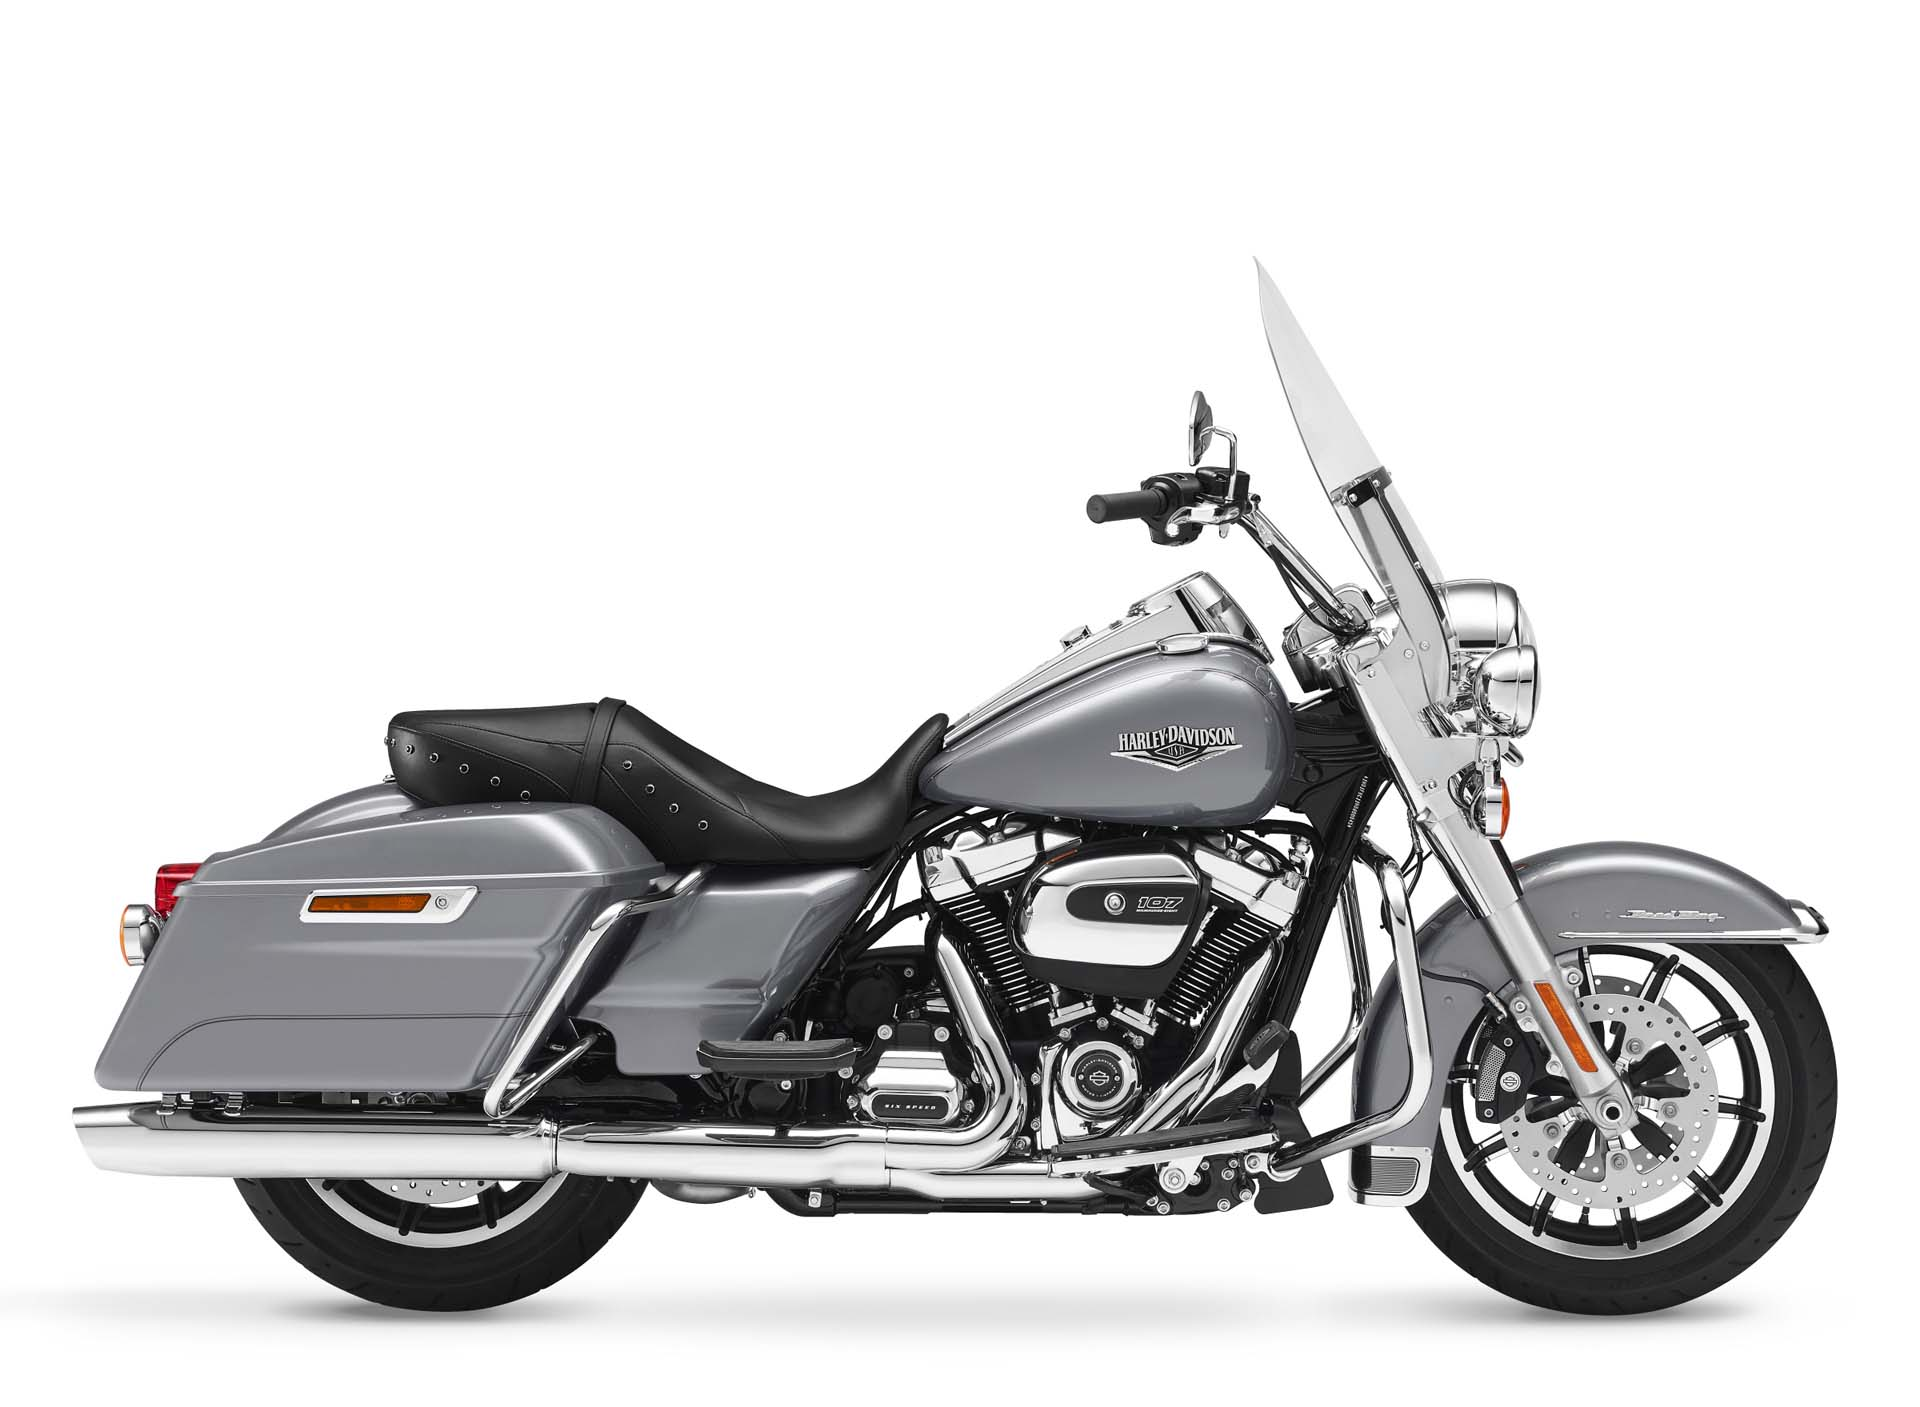 2017 FLHR Road King. Touring.